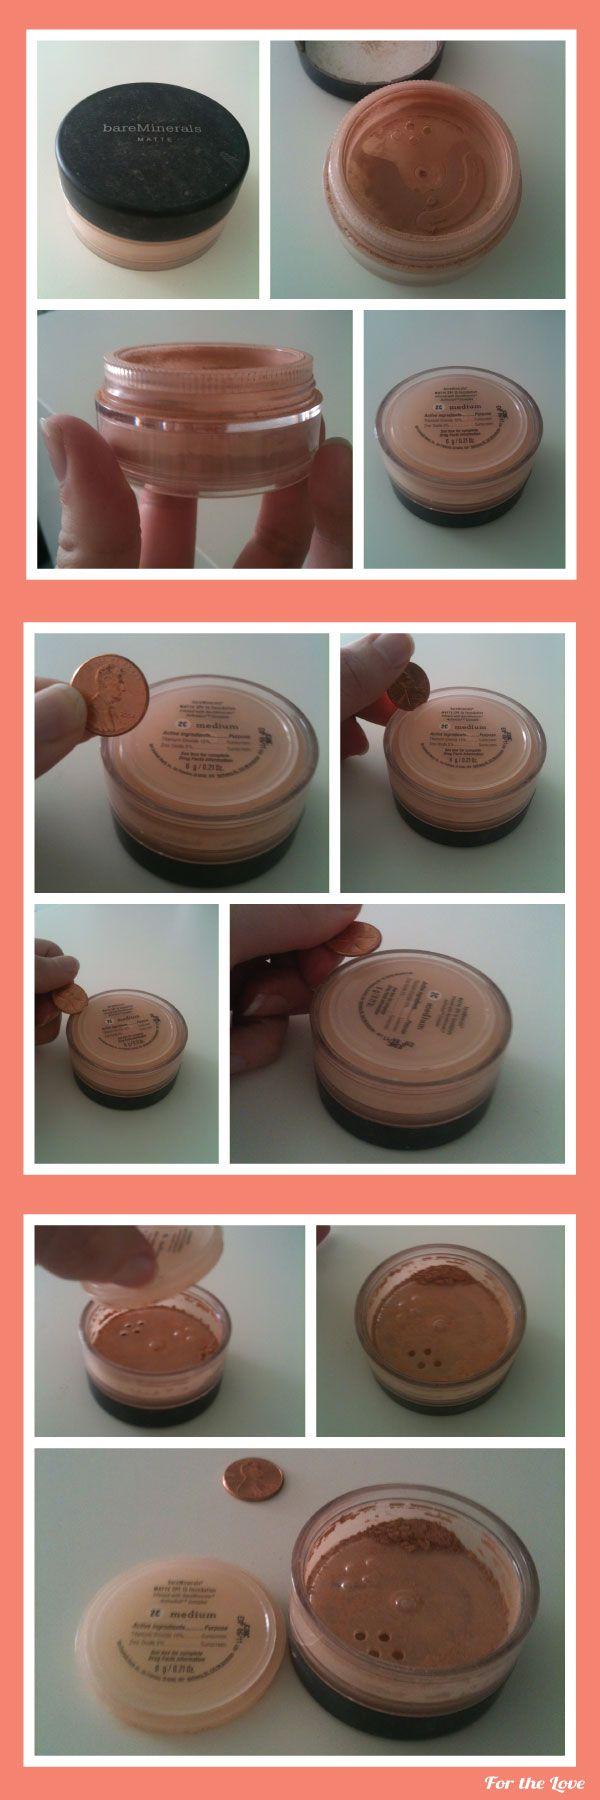 I am in love with bare minerals make-up and have been a loyal customer now for about oh, 5 years and counting. In fact, recently I was willing to scan the glamorous shelves of Sephora to experimen...